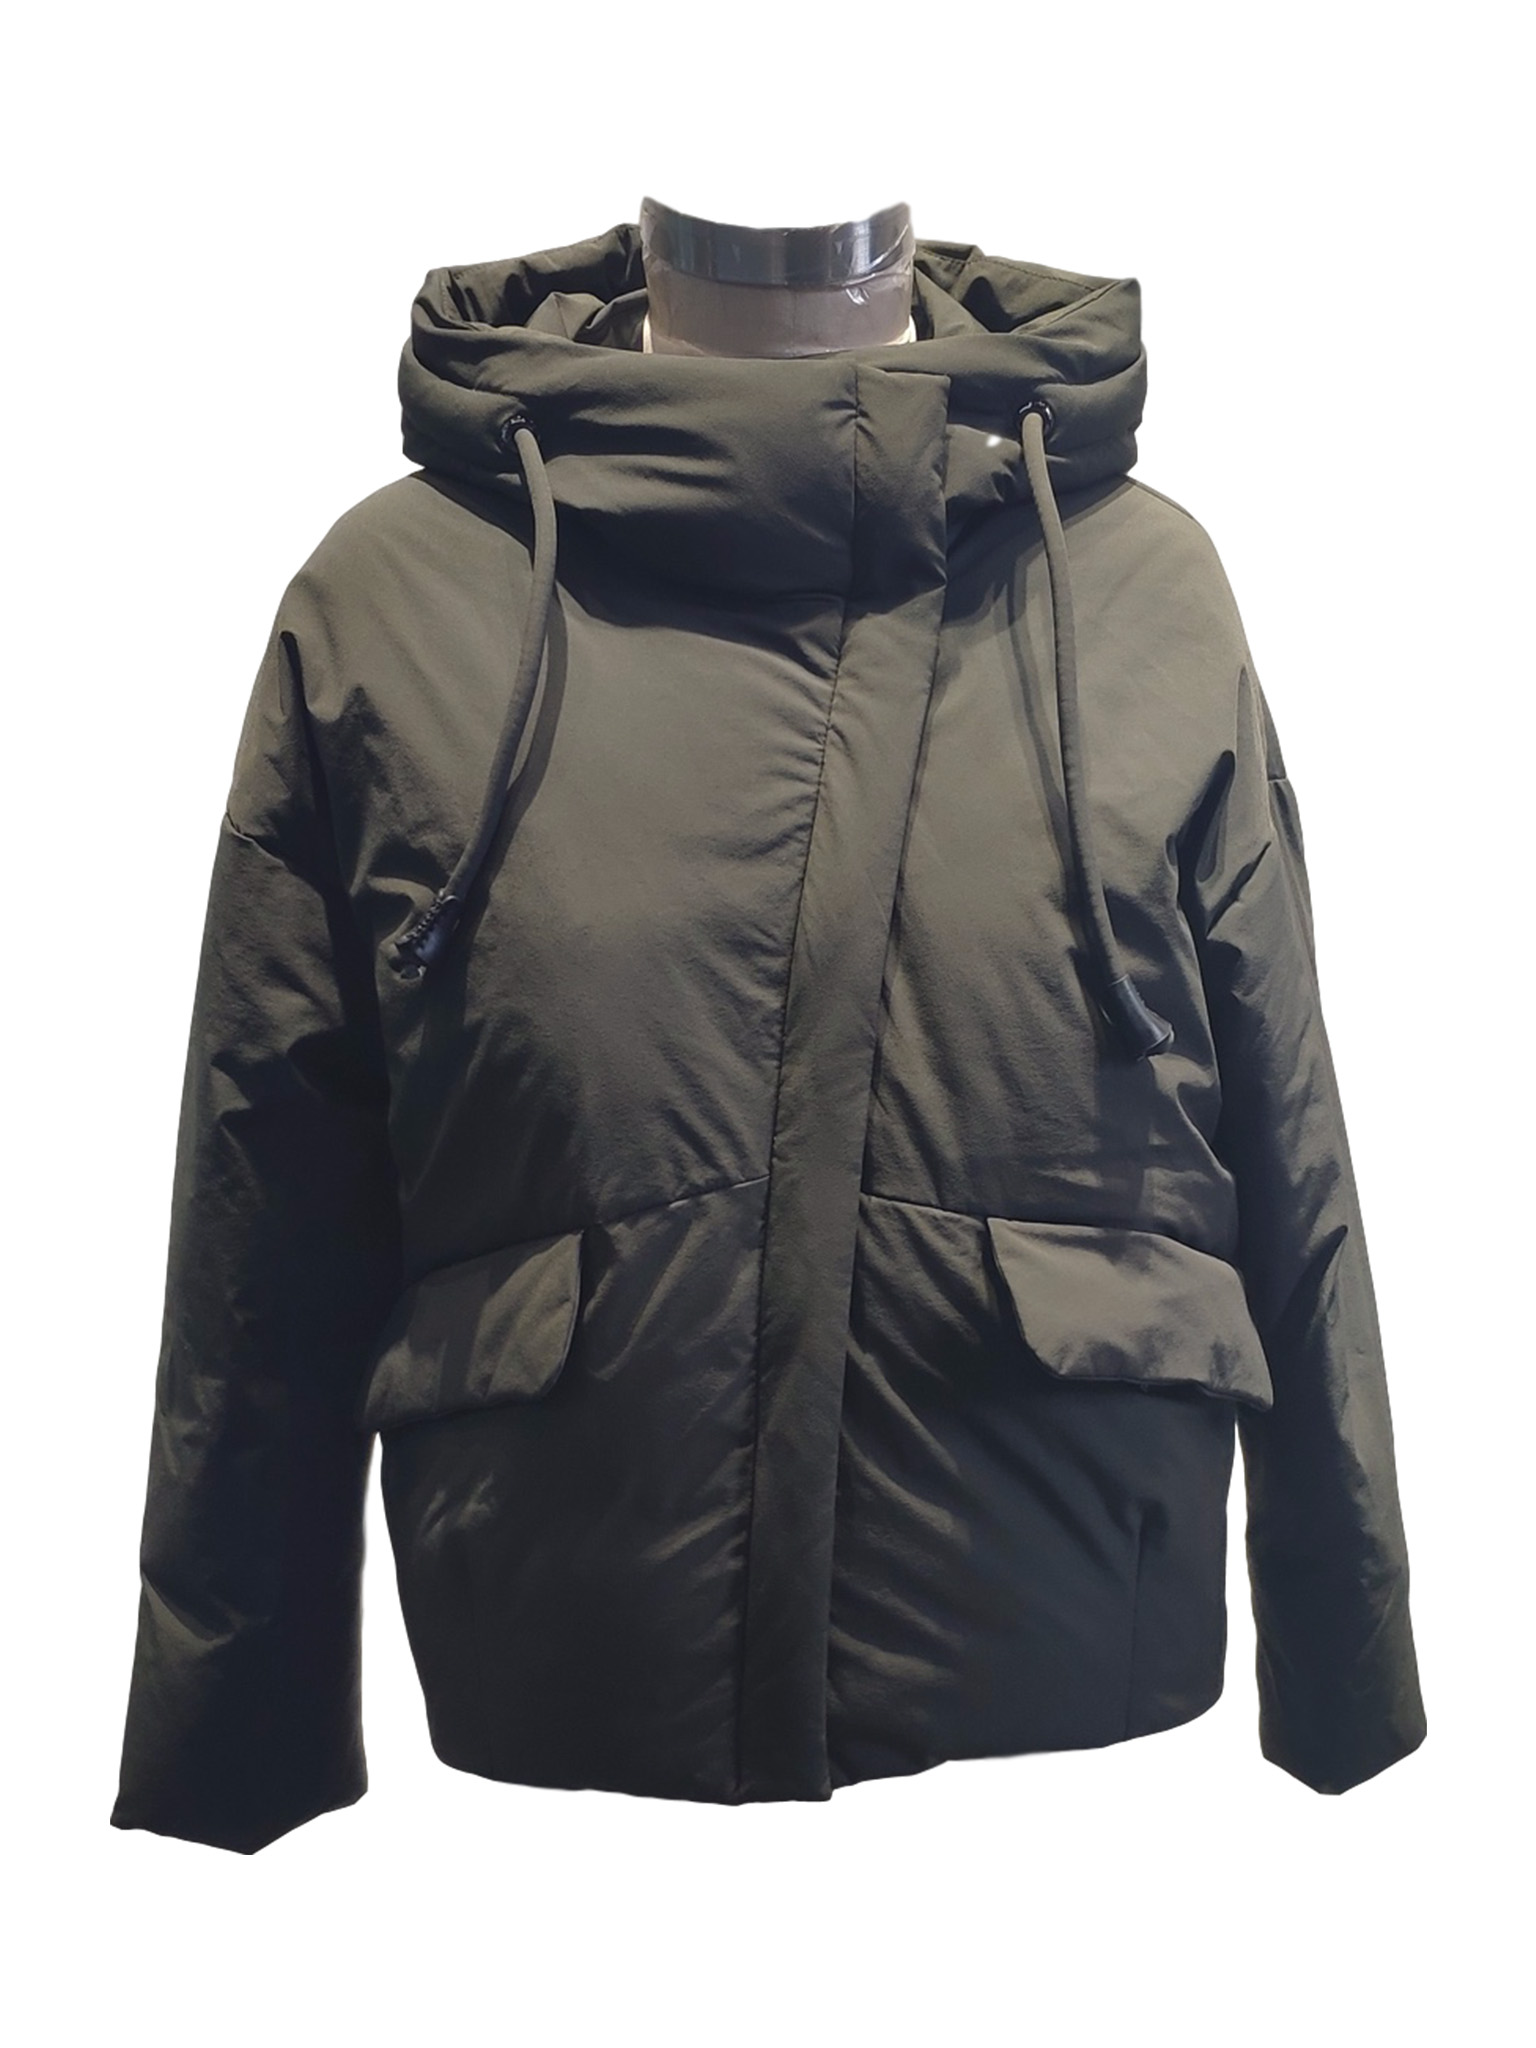 patagonia down jacket cost